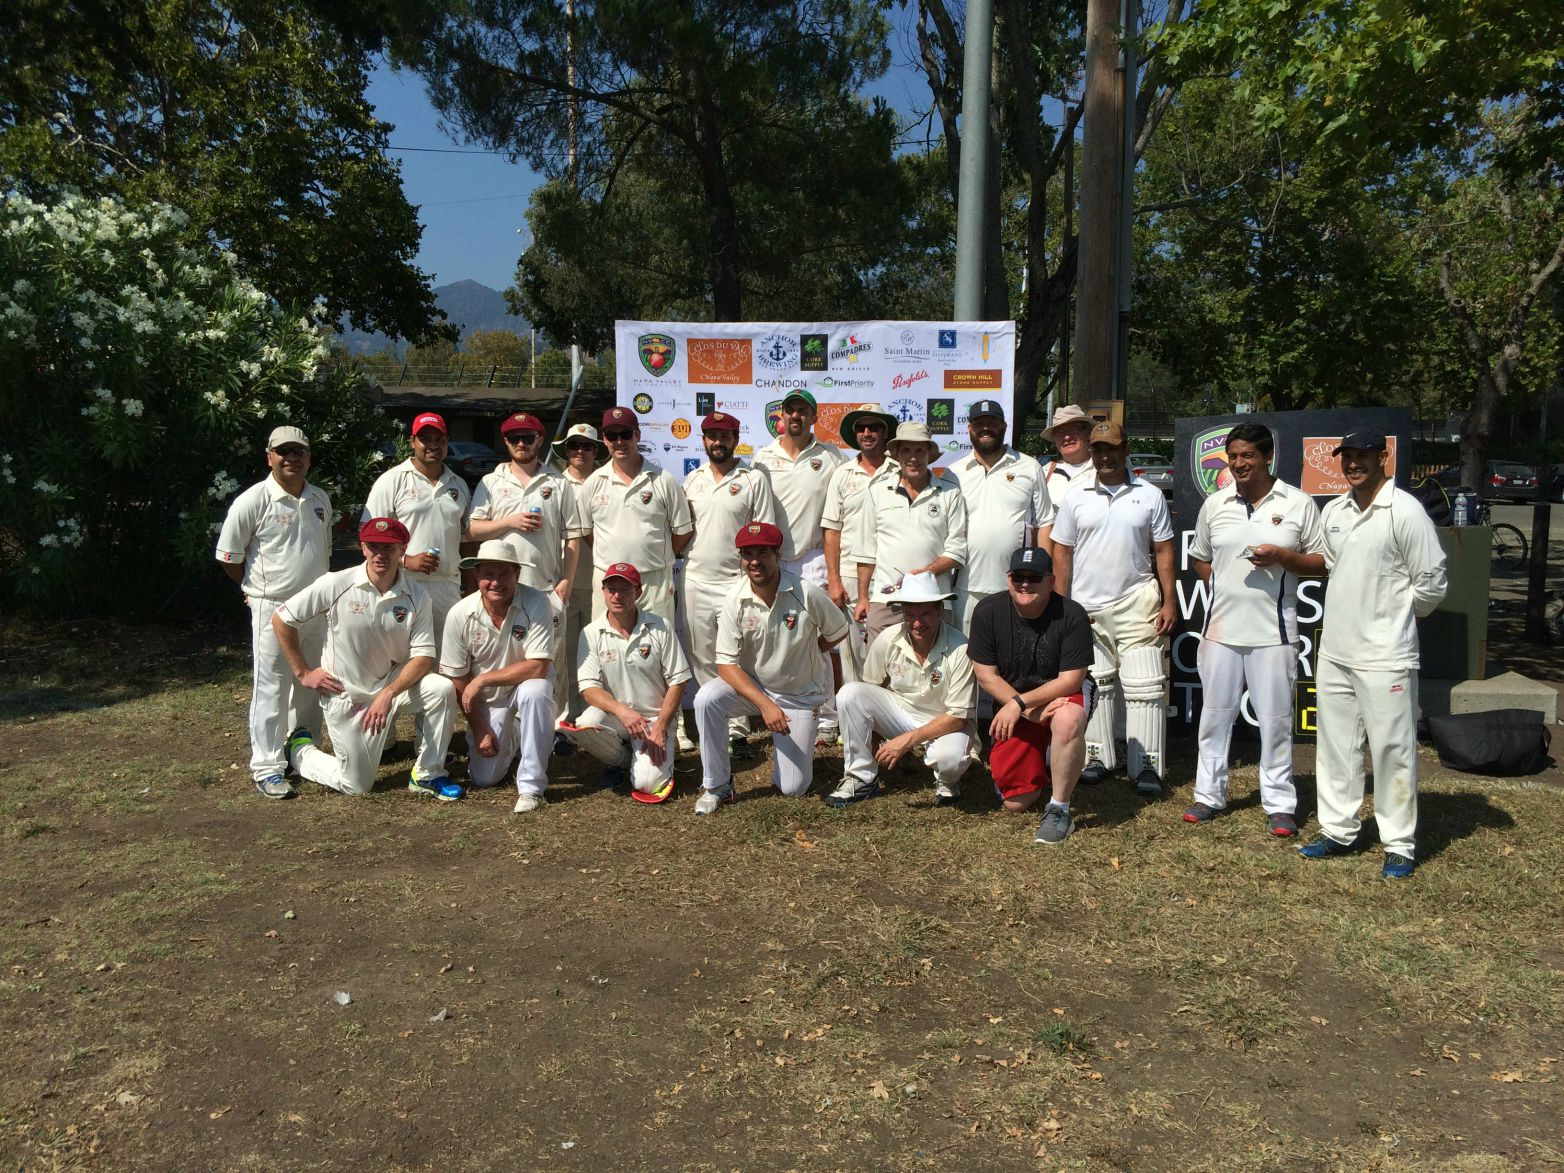 Team shot of the NVCC and Marin CC at the end of their recent game at the Fairgrounds in Calistoga